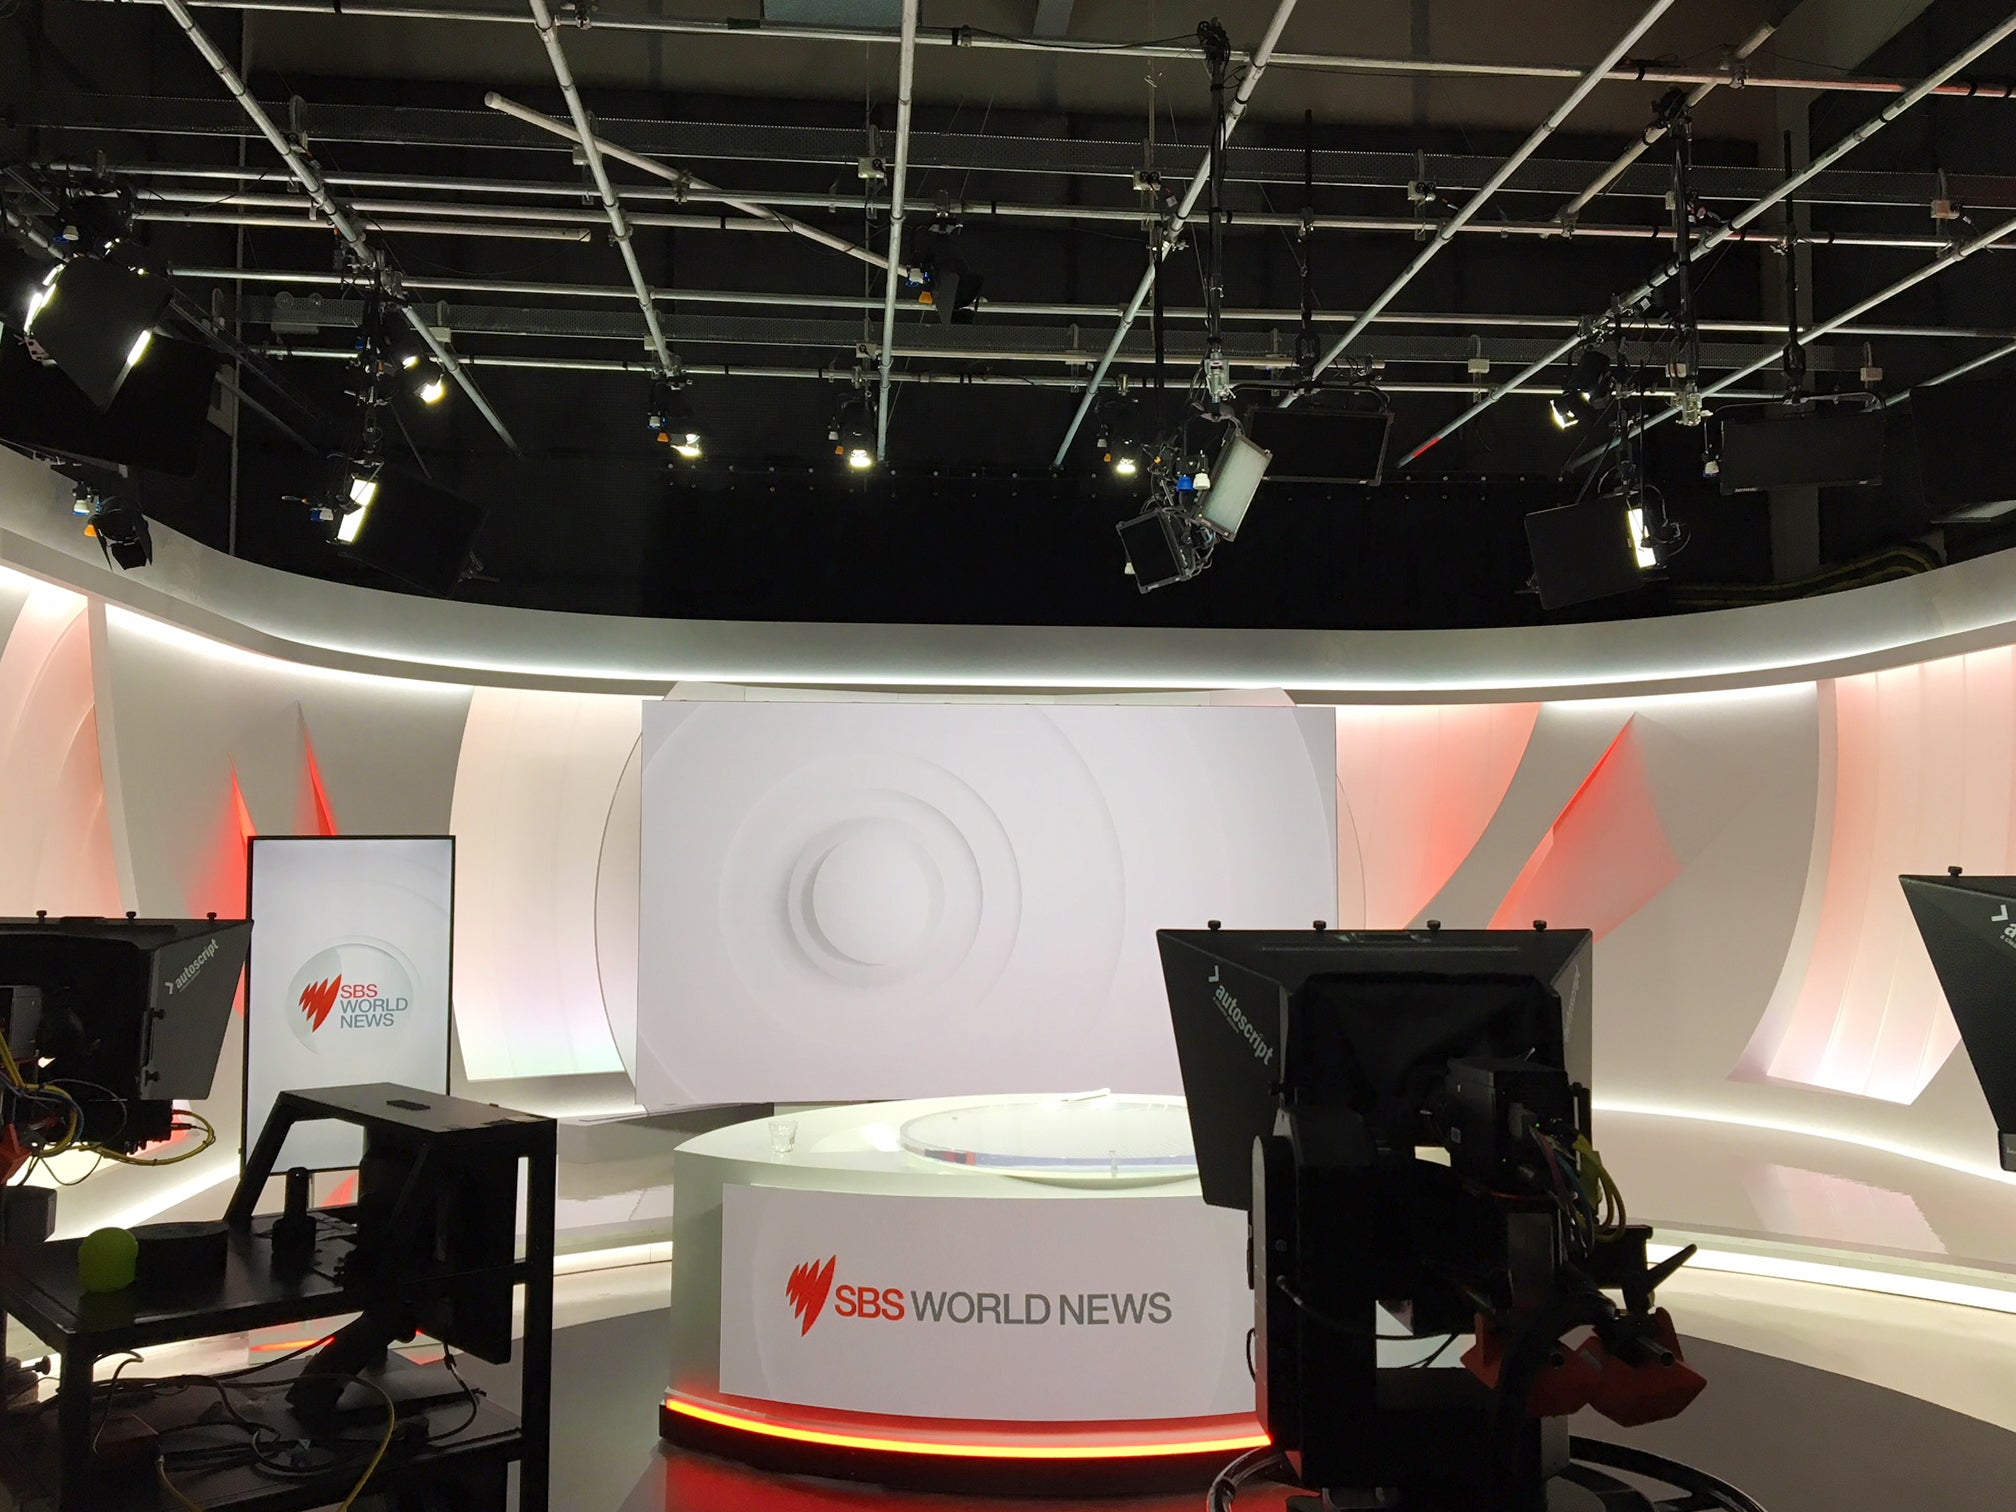 SBS World news TV studio fit out behind the scenes